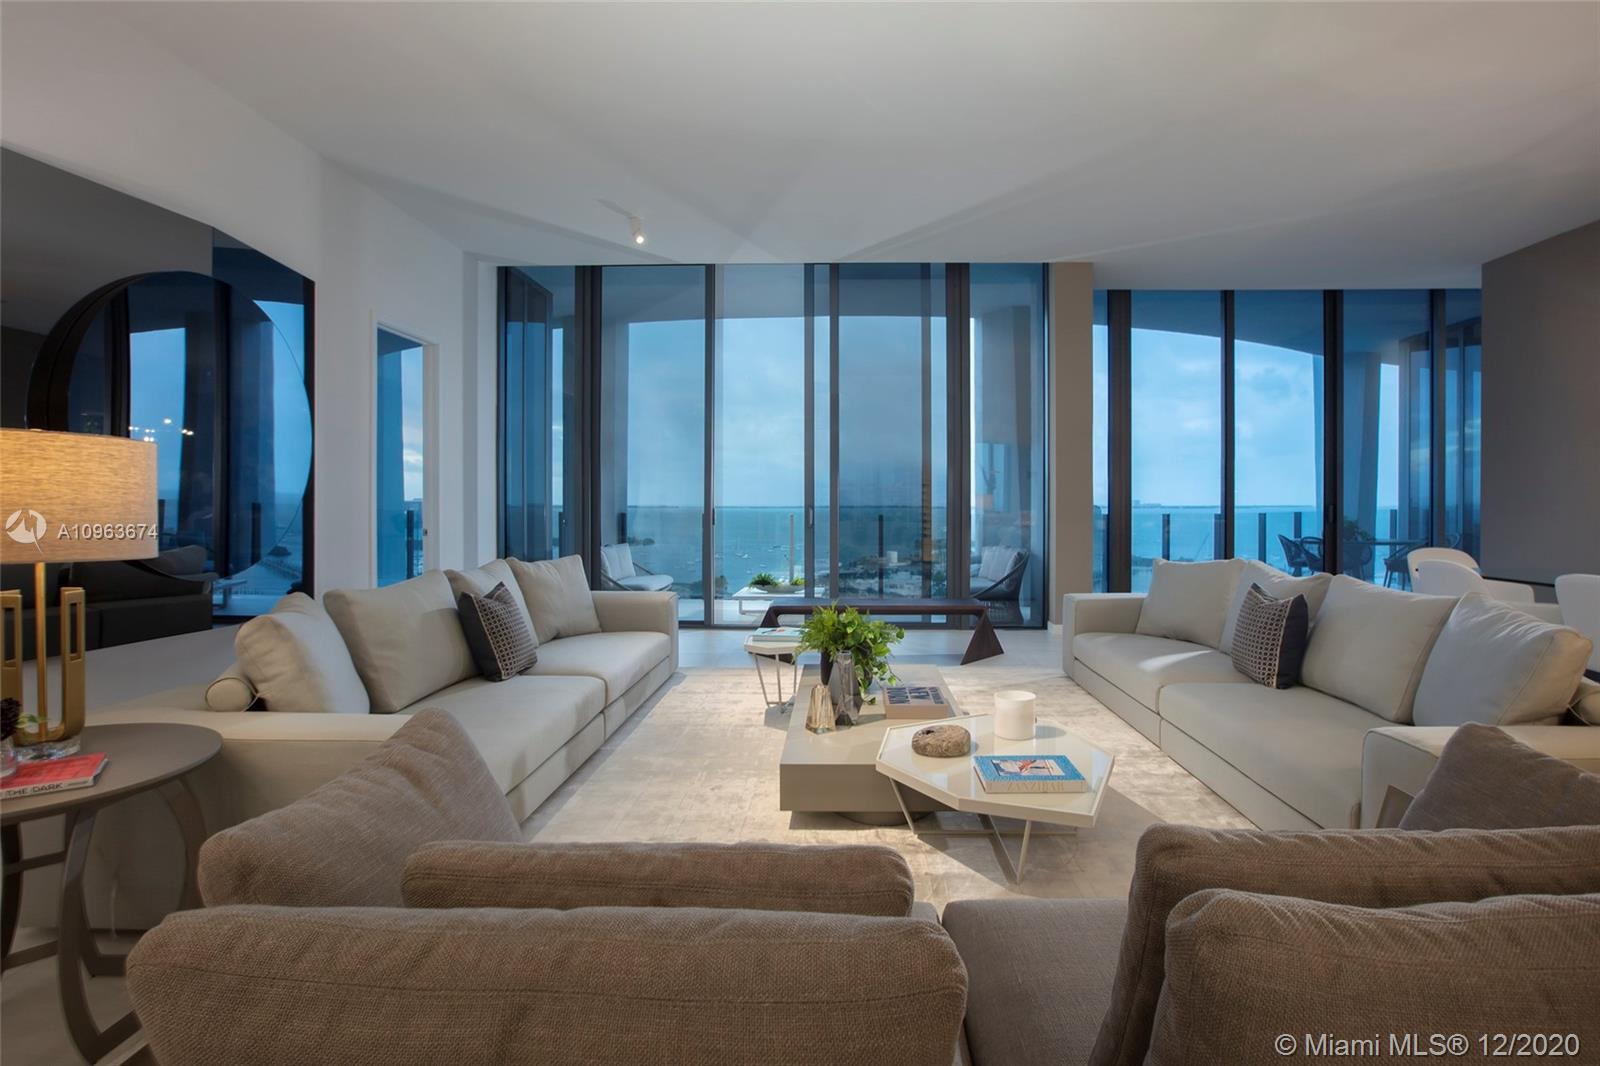 This one of a kind condo in One Park grove tower has spectacular views and has an exquisitely designed interior, with 2 units combined to create over 5100 sqft of living space, with 5 bedrooms 5 and a half baths. The living area is split with a beautiful glass wine room, a open kitchen design ideal for entertaining. Park Grove offers the ultimate lifestyle in Miami, Walk to the center of the grove with numerus restaurants, cafes and boutiques or enjoy the endless amenity options in Park Grove. Which include a top of the line spa, 2 gyms, movie theater, kids playroom, 3 swimming pools, expansive gardens, amphitheater, Michael Swartz's Tigertail and Mary restaurant, stunning meeting rooms with kitchen for parties, concierge services and more.